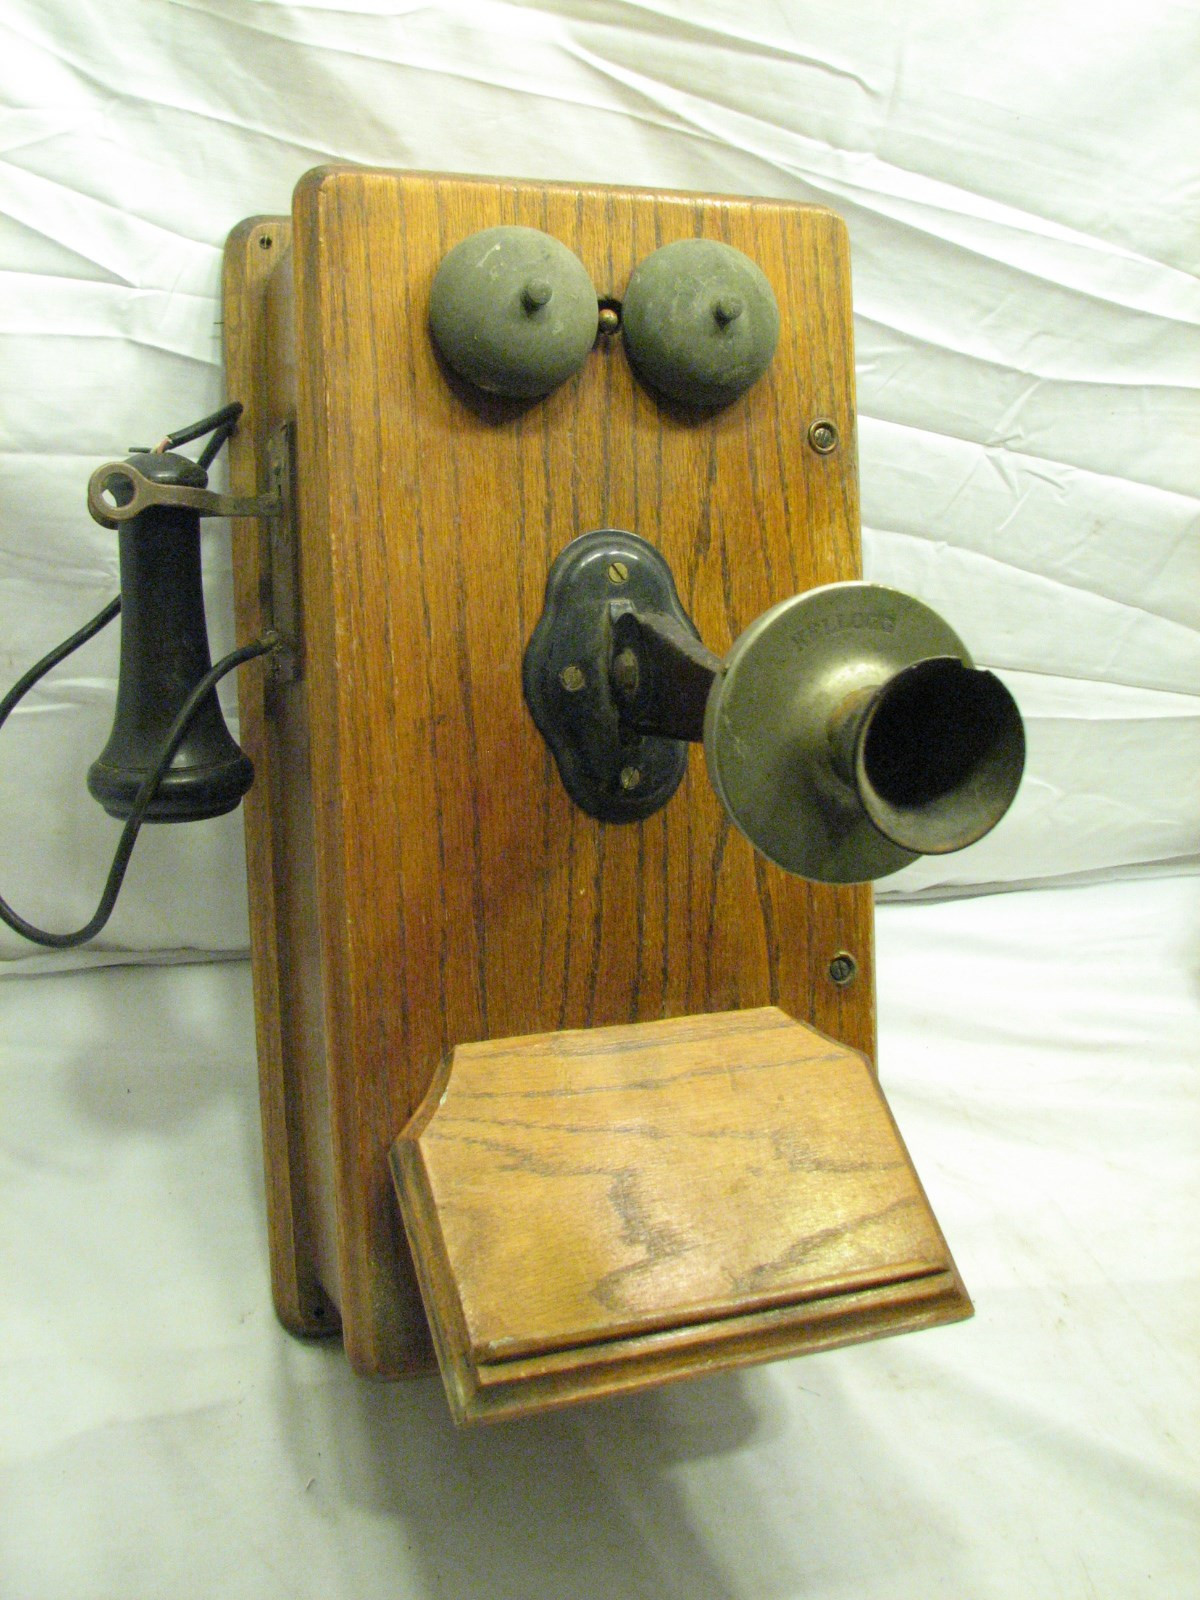 New Antique Kellogg Oak Ringer Wall Telephone Wooden Box Phone Old Wooden Phone Of Adorable 43 Images Old Wooden Phone